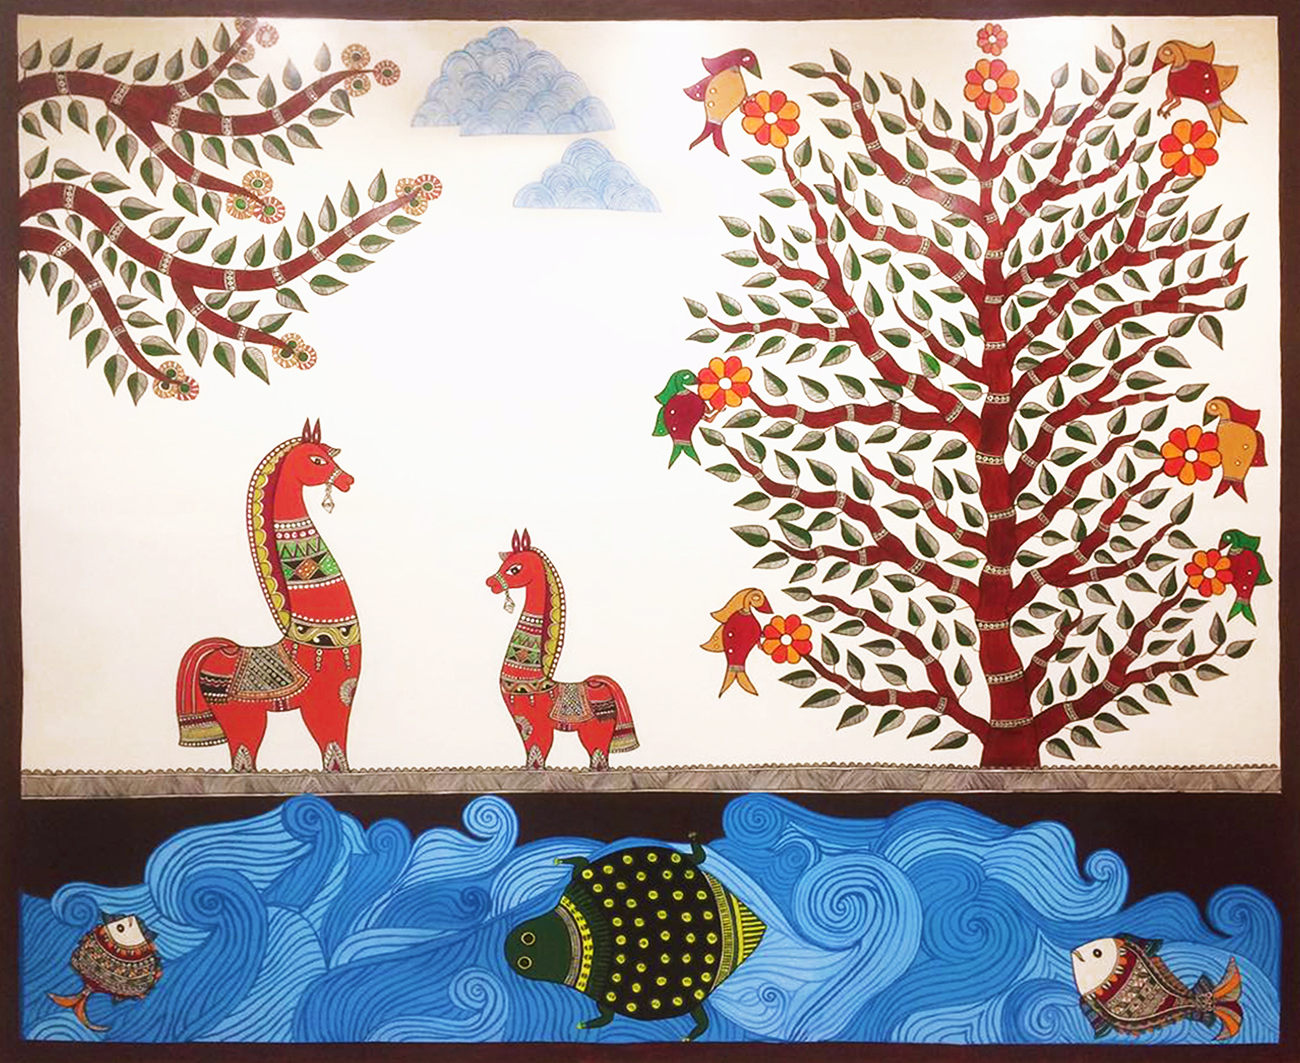 This is a Madhubani river scene with horses at the riverbanks, painted on the corridor wall.  Nobility and strength of the Horse are great qualities to emulate.